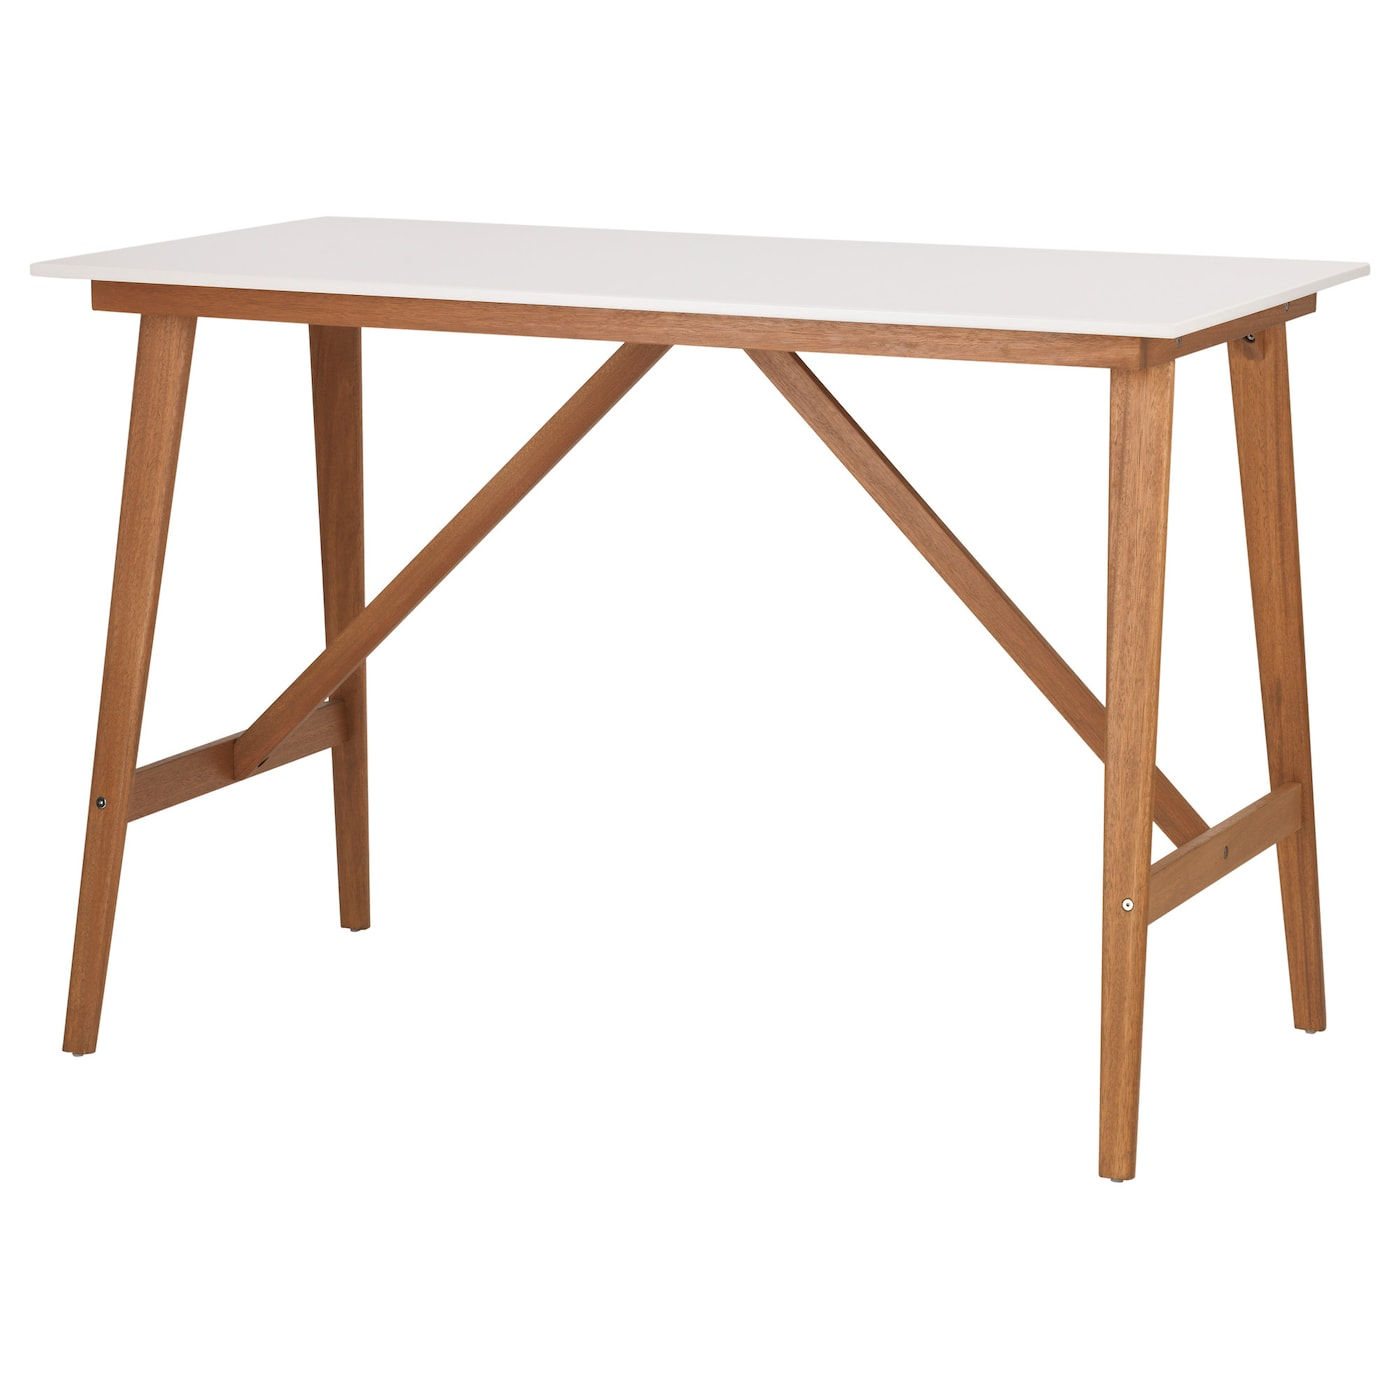 Fanbyn bar table white 140x78x95 cm ikea for High table and chairs ikea